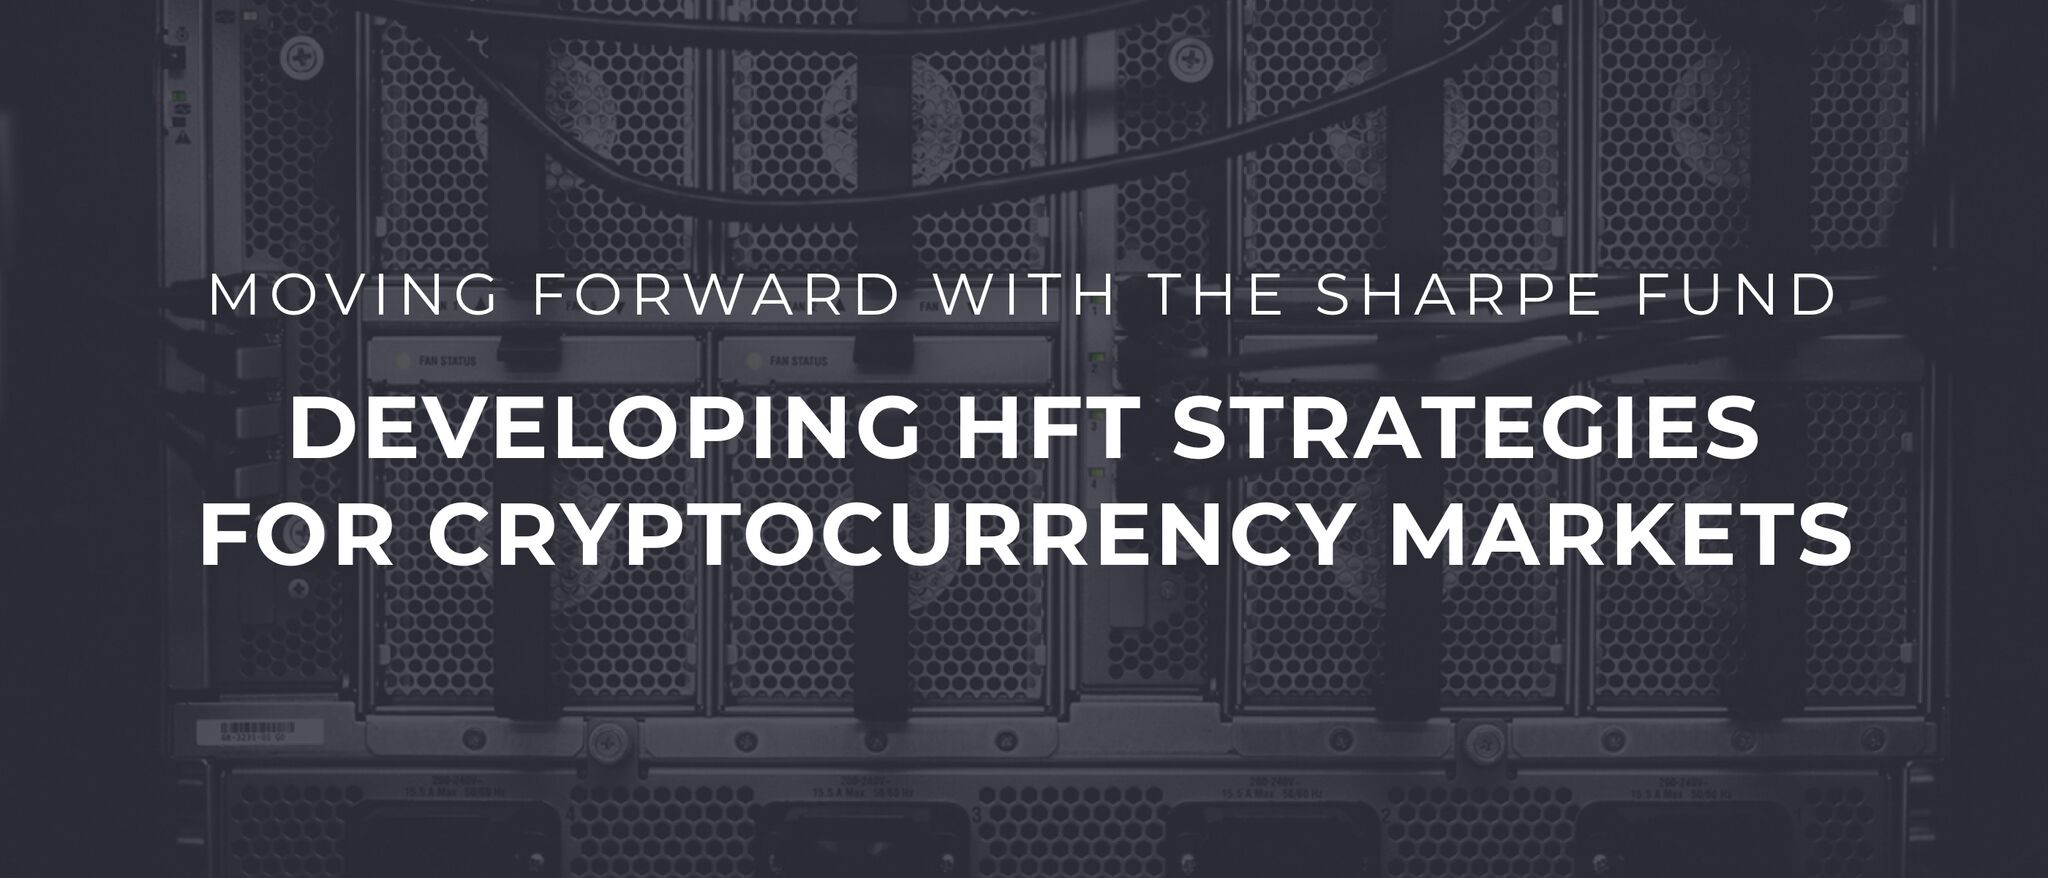 hft cryptocurrency)